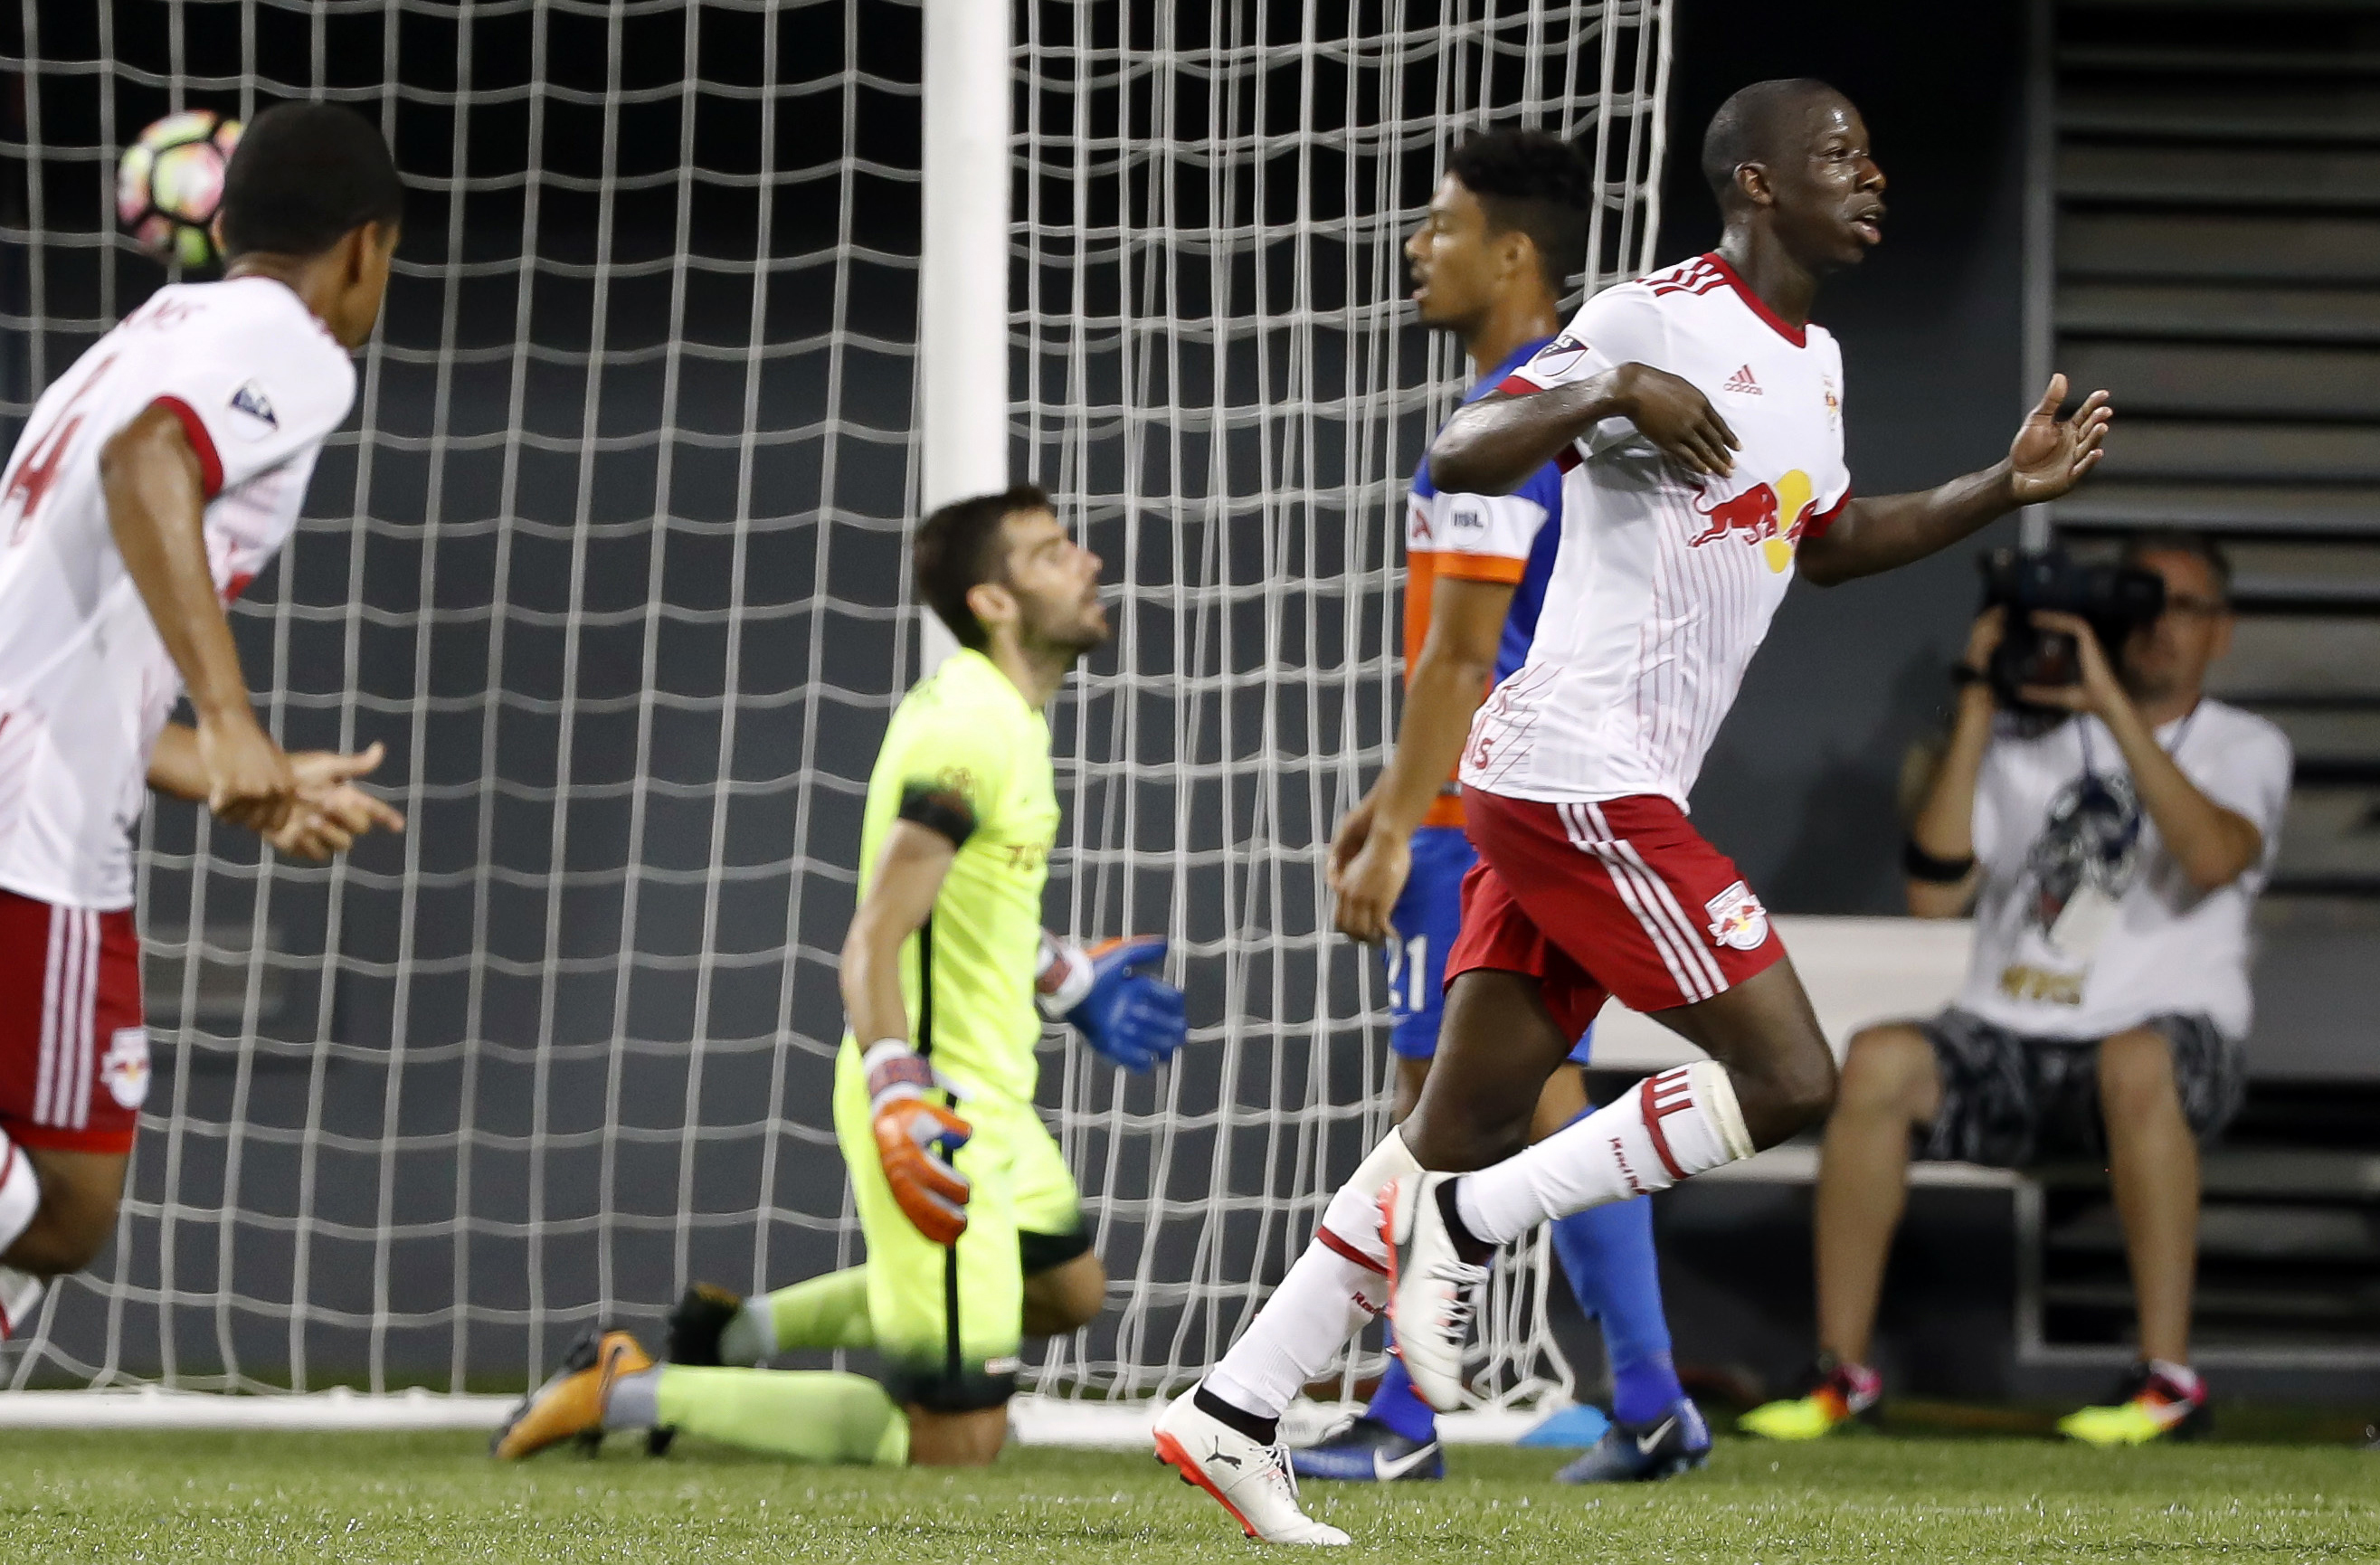 New York Red Bulls forward Bradley Wright-Phillips, right, celebrates after scoring on FC Cincinnati goalkeeper Mitch Hildebrandt, center left, in second overtime of a U.S. Open Cup soccer semi-final match Tuesday, Aug. 15, 2017, in Cincinnati. The Red Bulls won 3-2. (AP Photo/John Minchillo)